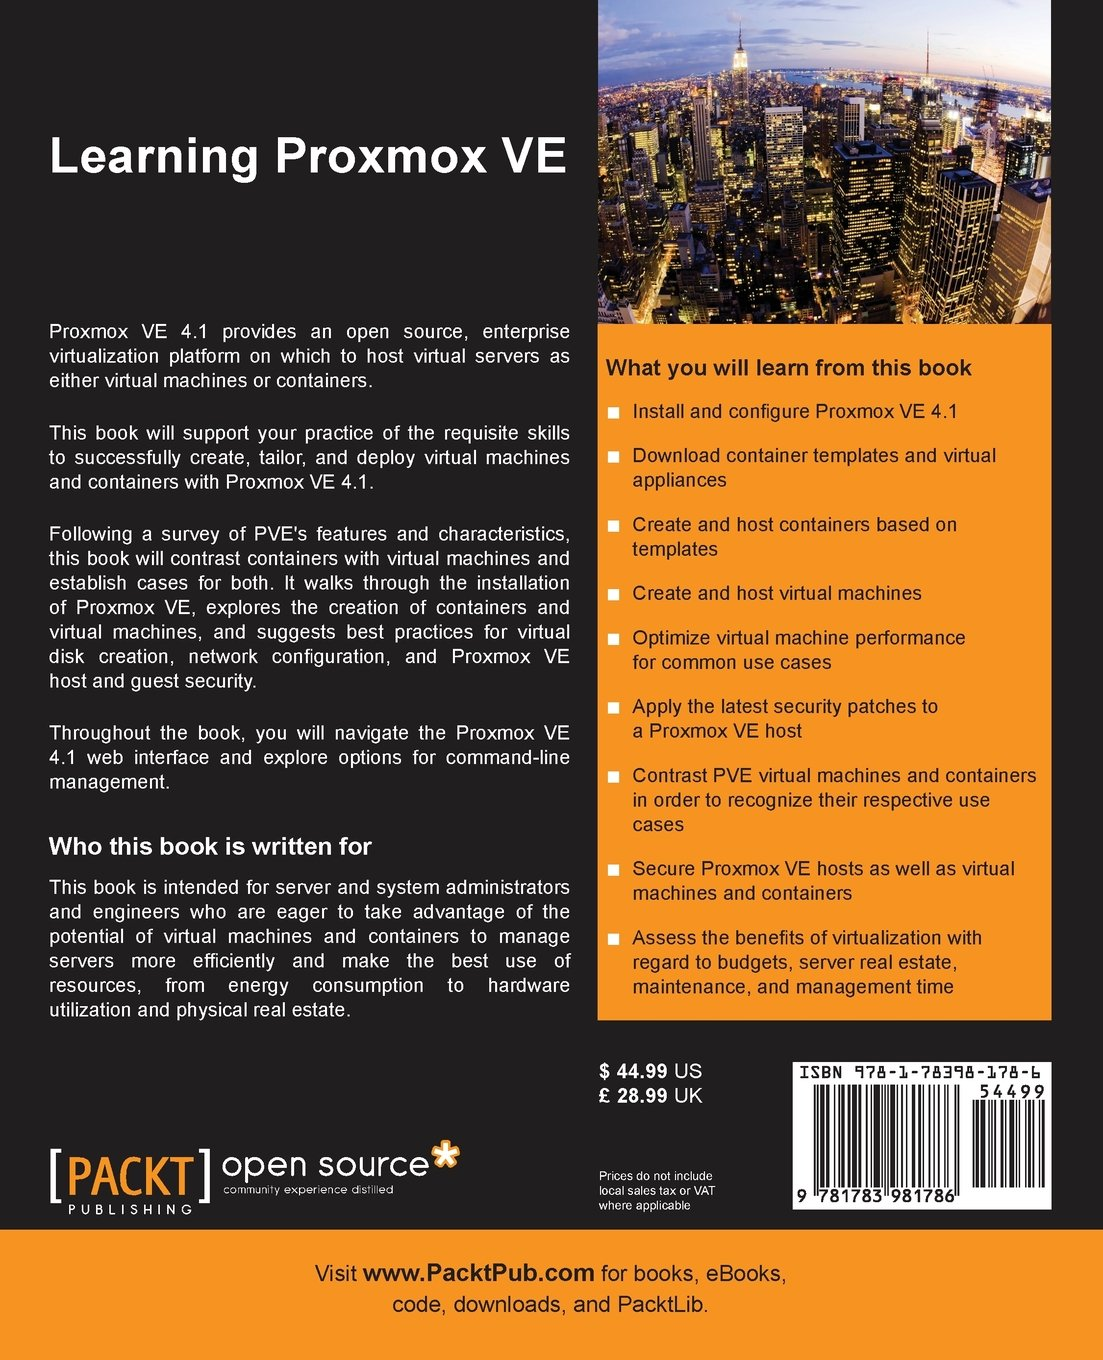 Back of the book: Orange and black with descriptive text